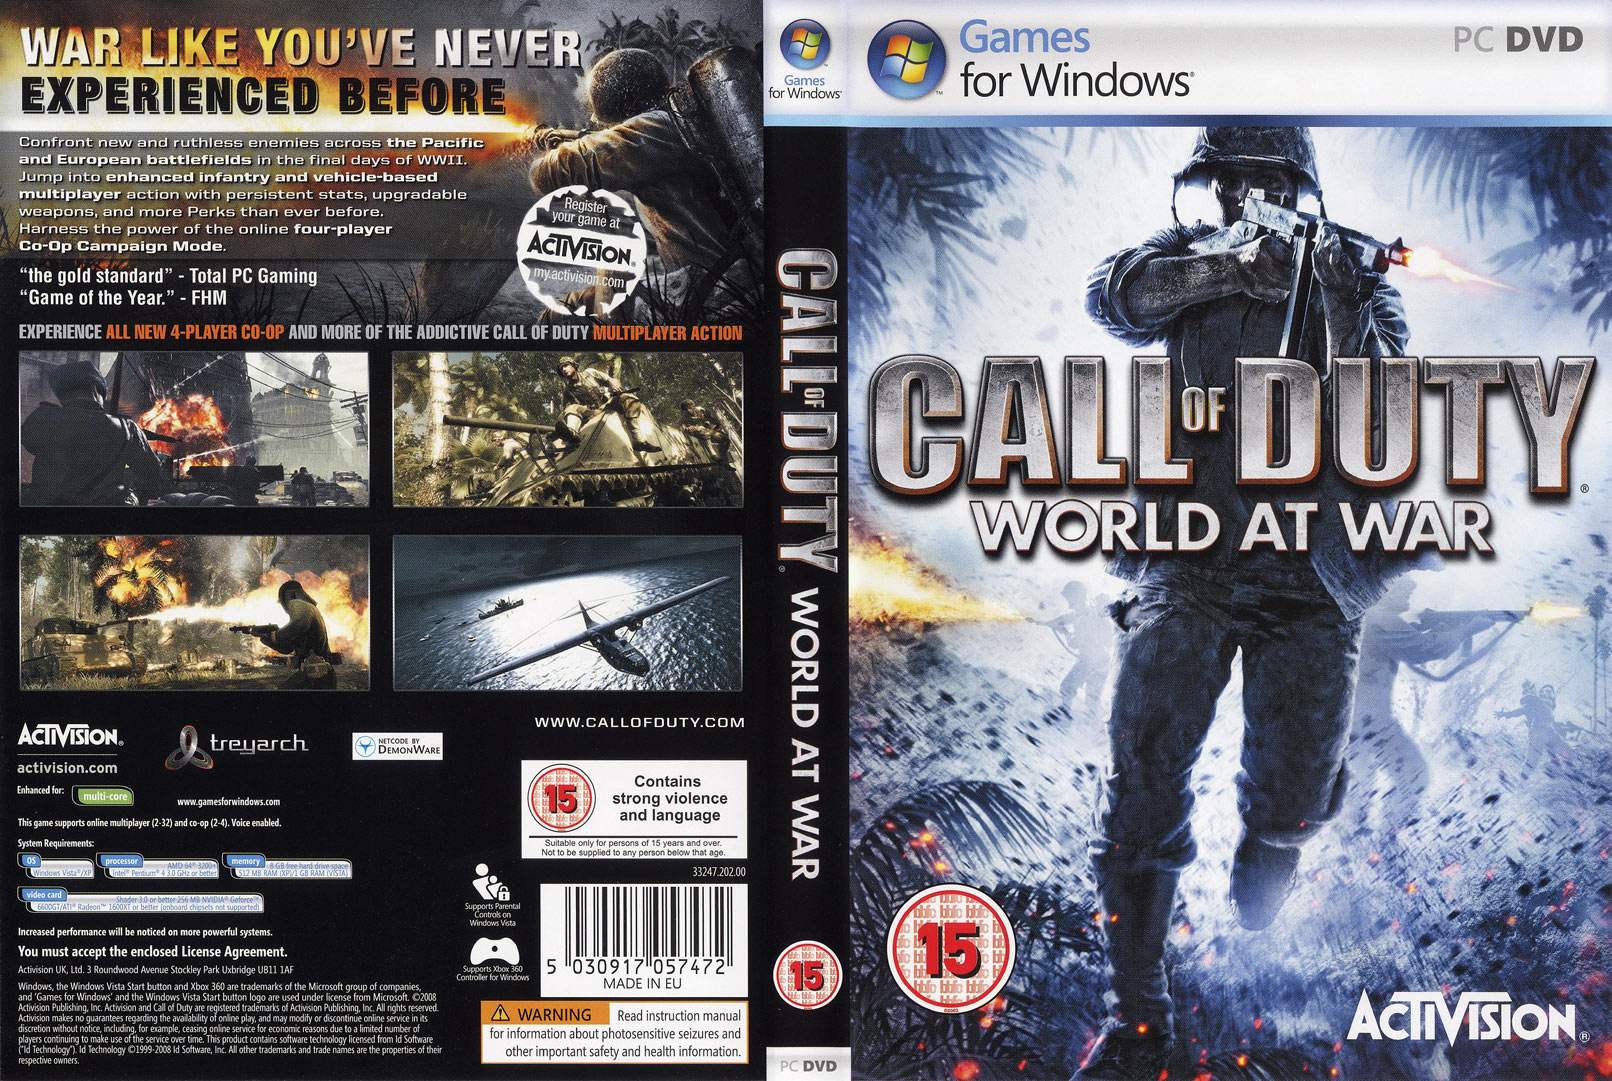 Call of Duty 5: World at War - DVD obal 2